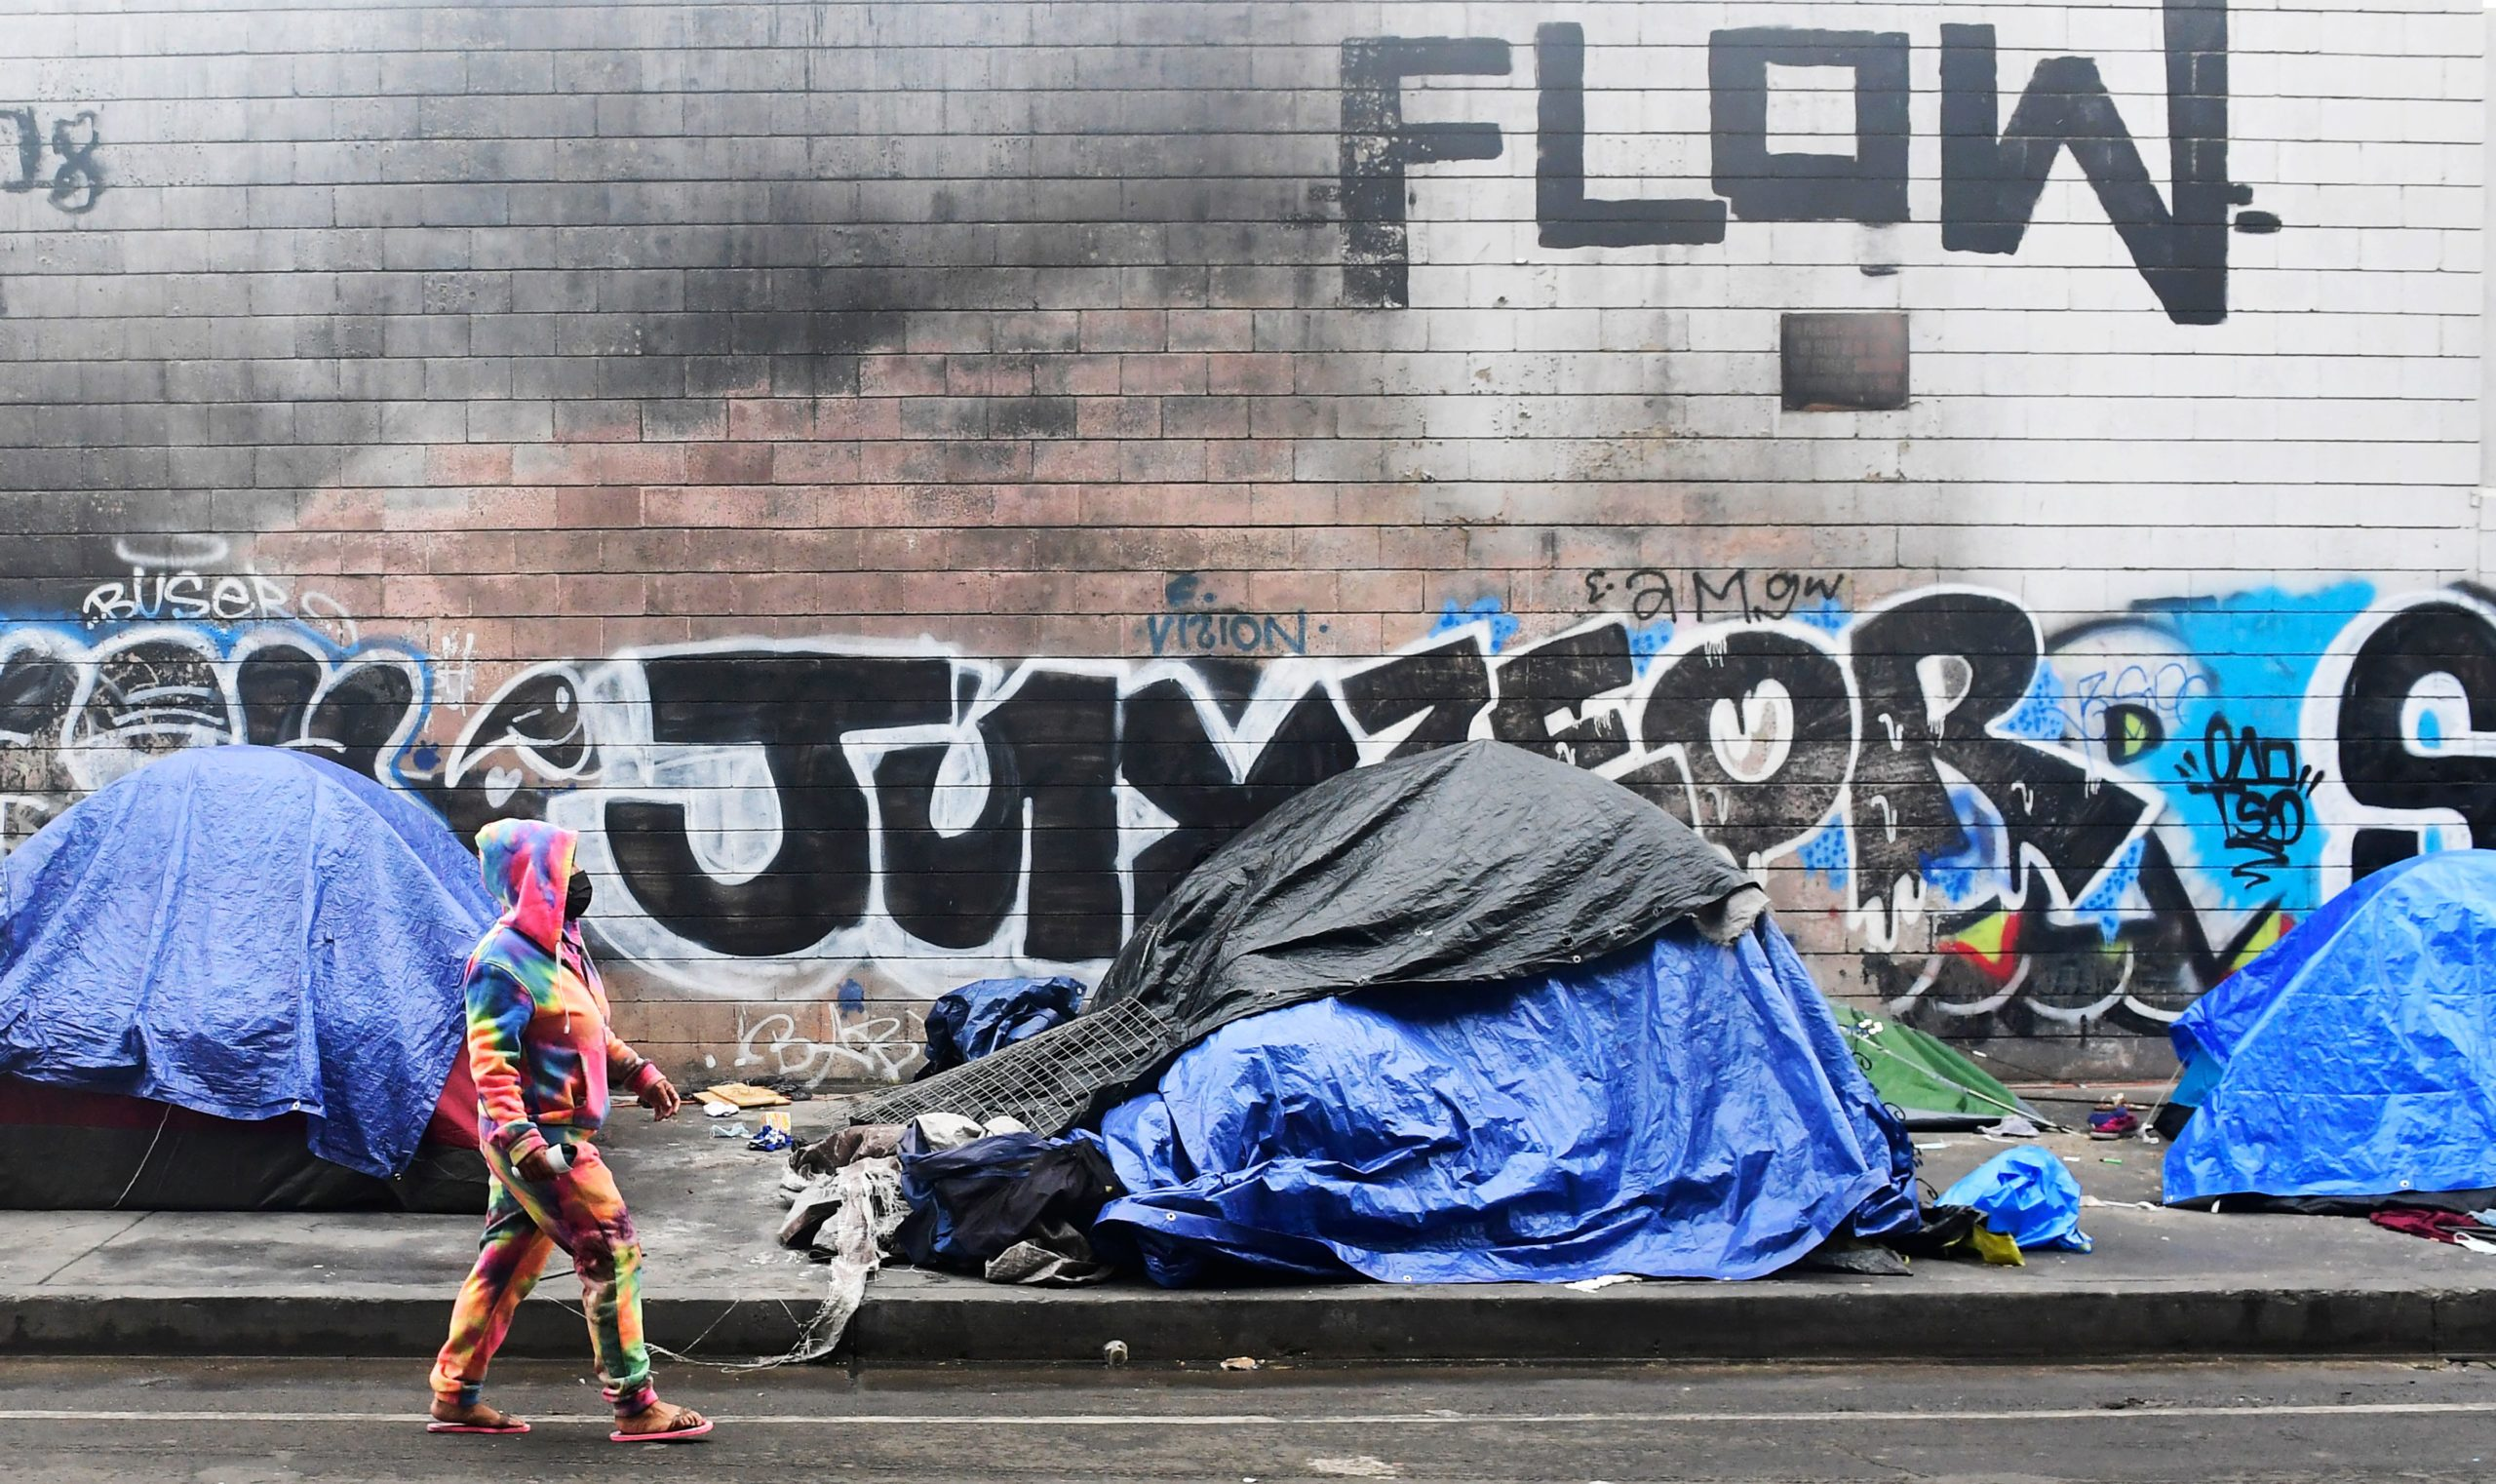 A woman walks past tents for the homeless lining a street in Los Angeles, California on Monday. The U.S.recorded its sharpest rise in poverty since the 1960s when the poverty rate spiked to 11.8% in December. (Frederic J. Brown/AFP via Getty Images)